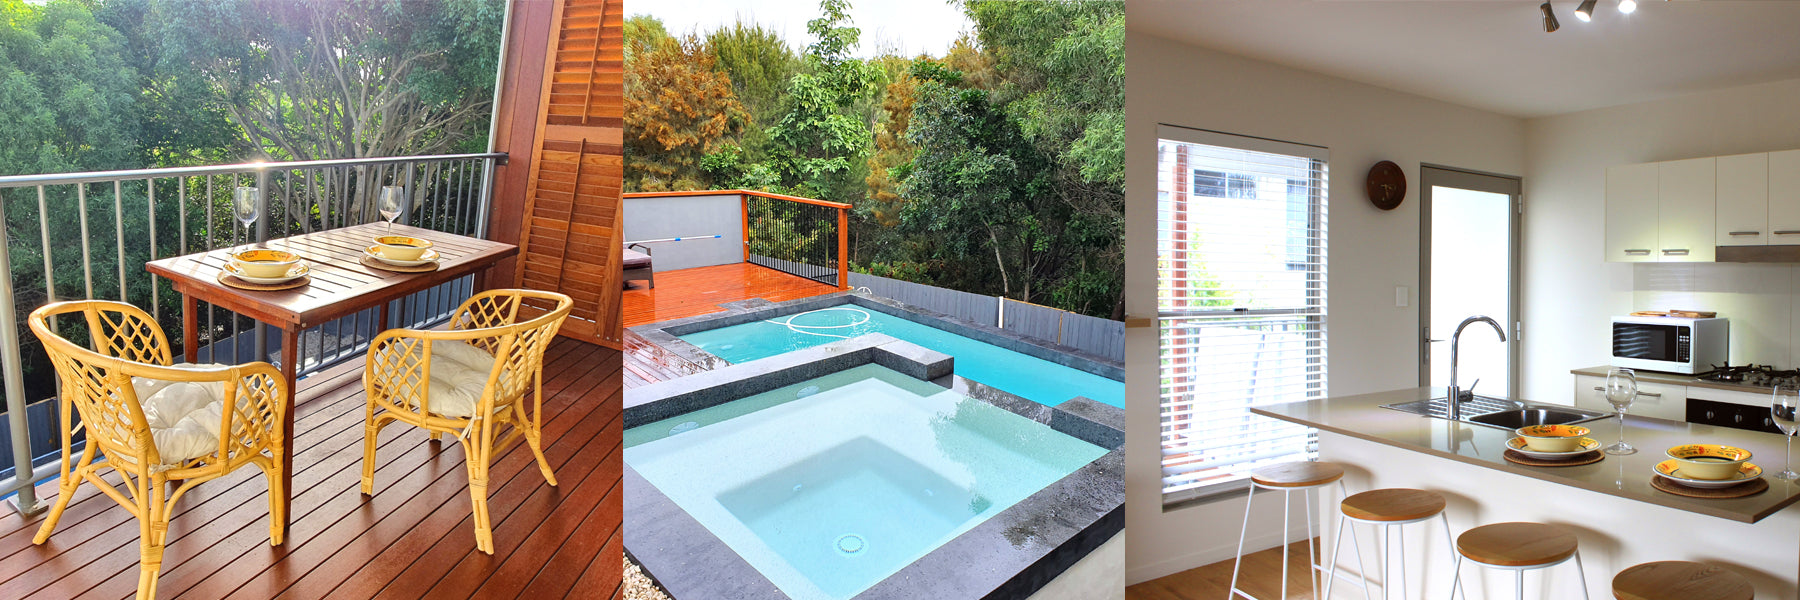 Noosa Holiday Unit Features Balcony, Full Kitchen and Pool